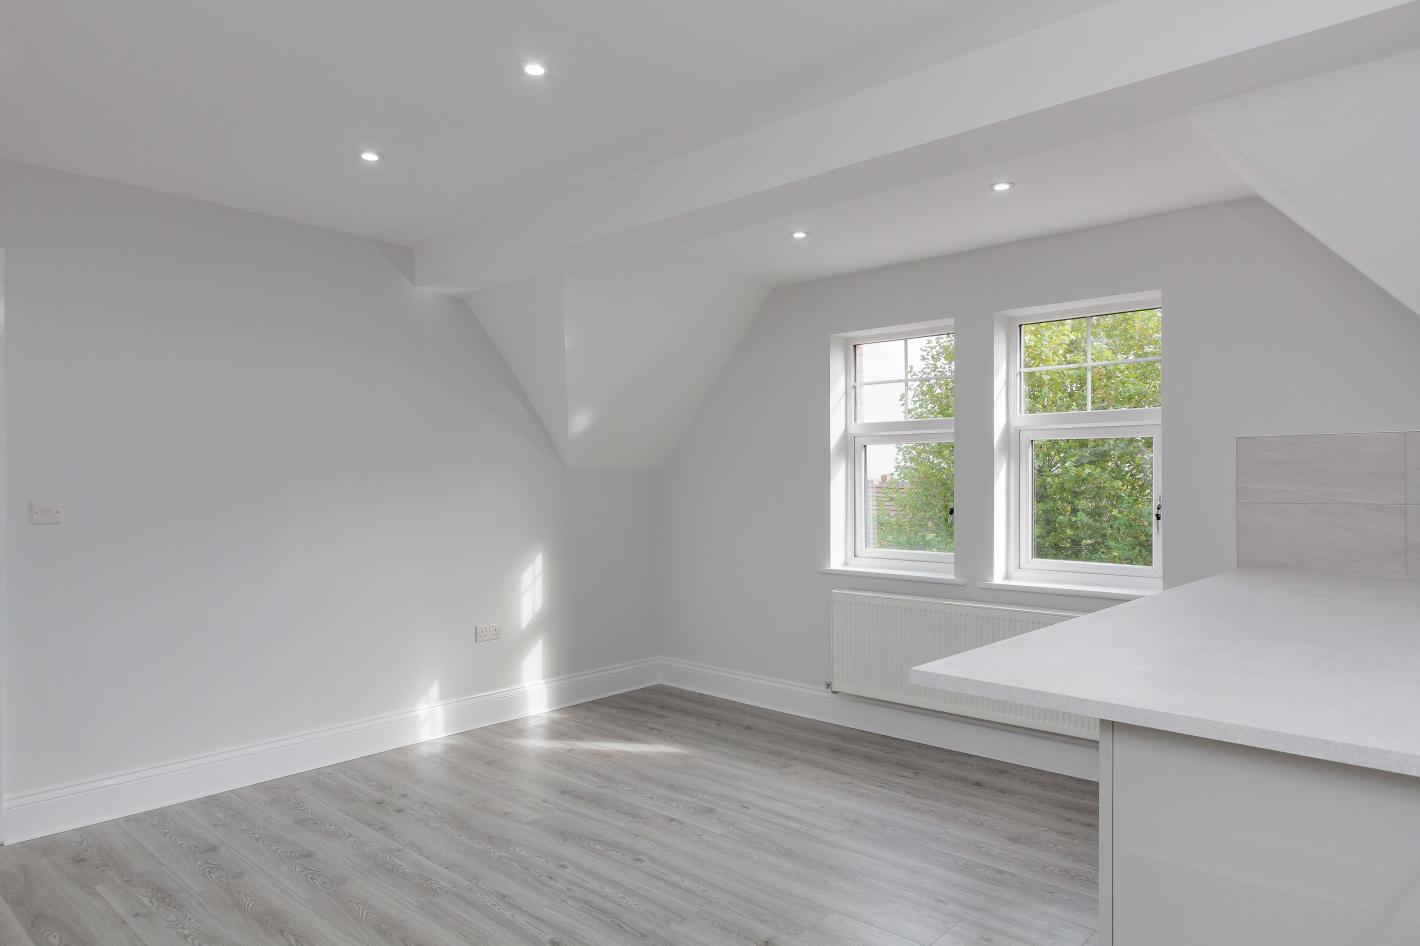 buy to let investment bedroom with white walls and grey laminate flooring, a large double window and spotlights on the ceiling.